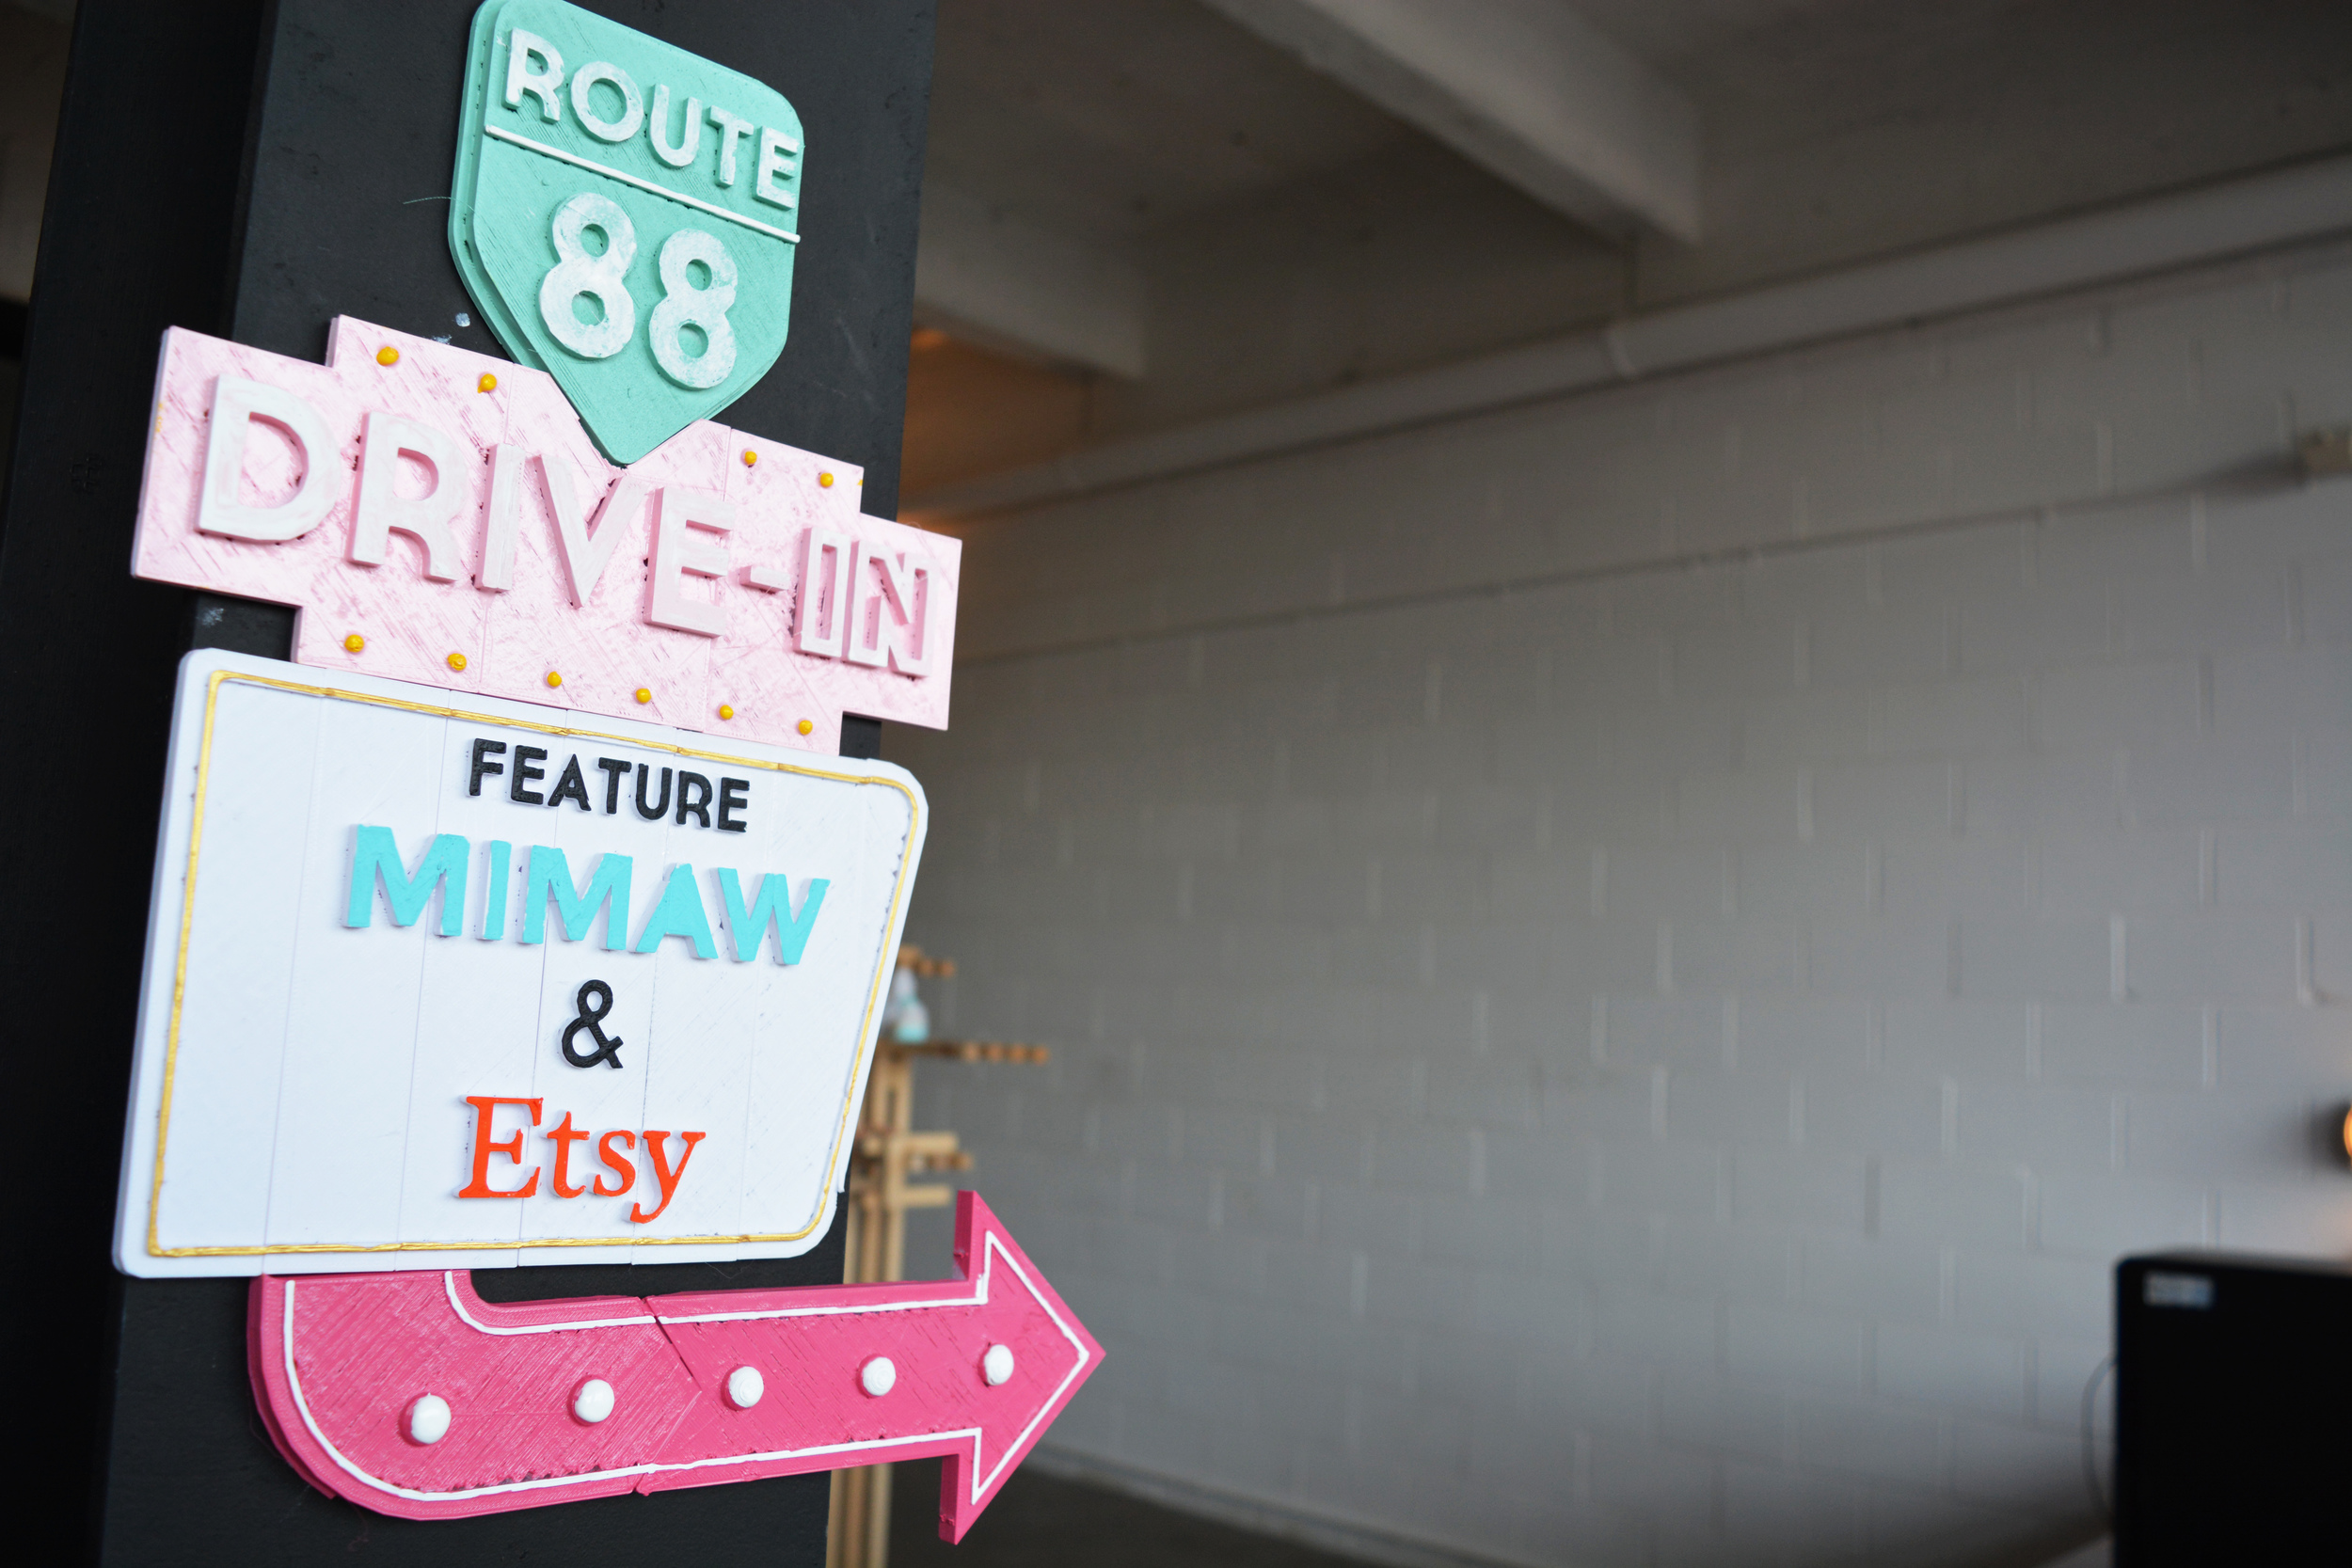 Our nostalgic Vegas inspired signage made for the workshop